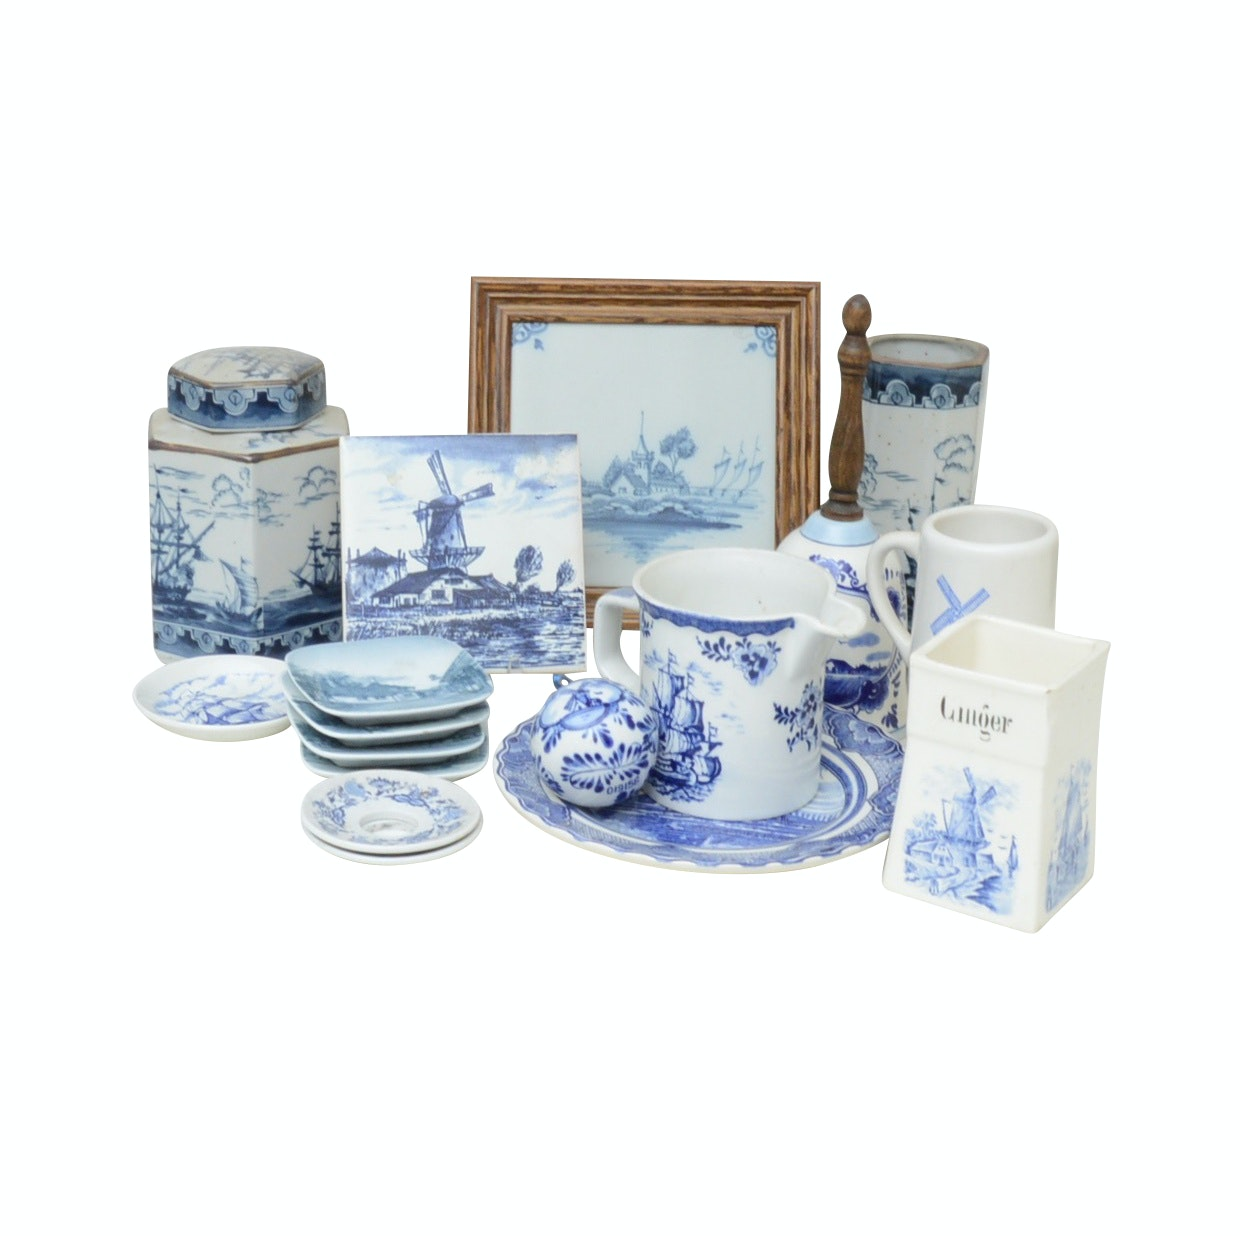 Blue and White Vases, Tableware, and More